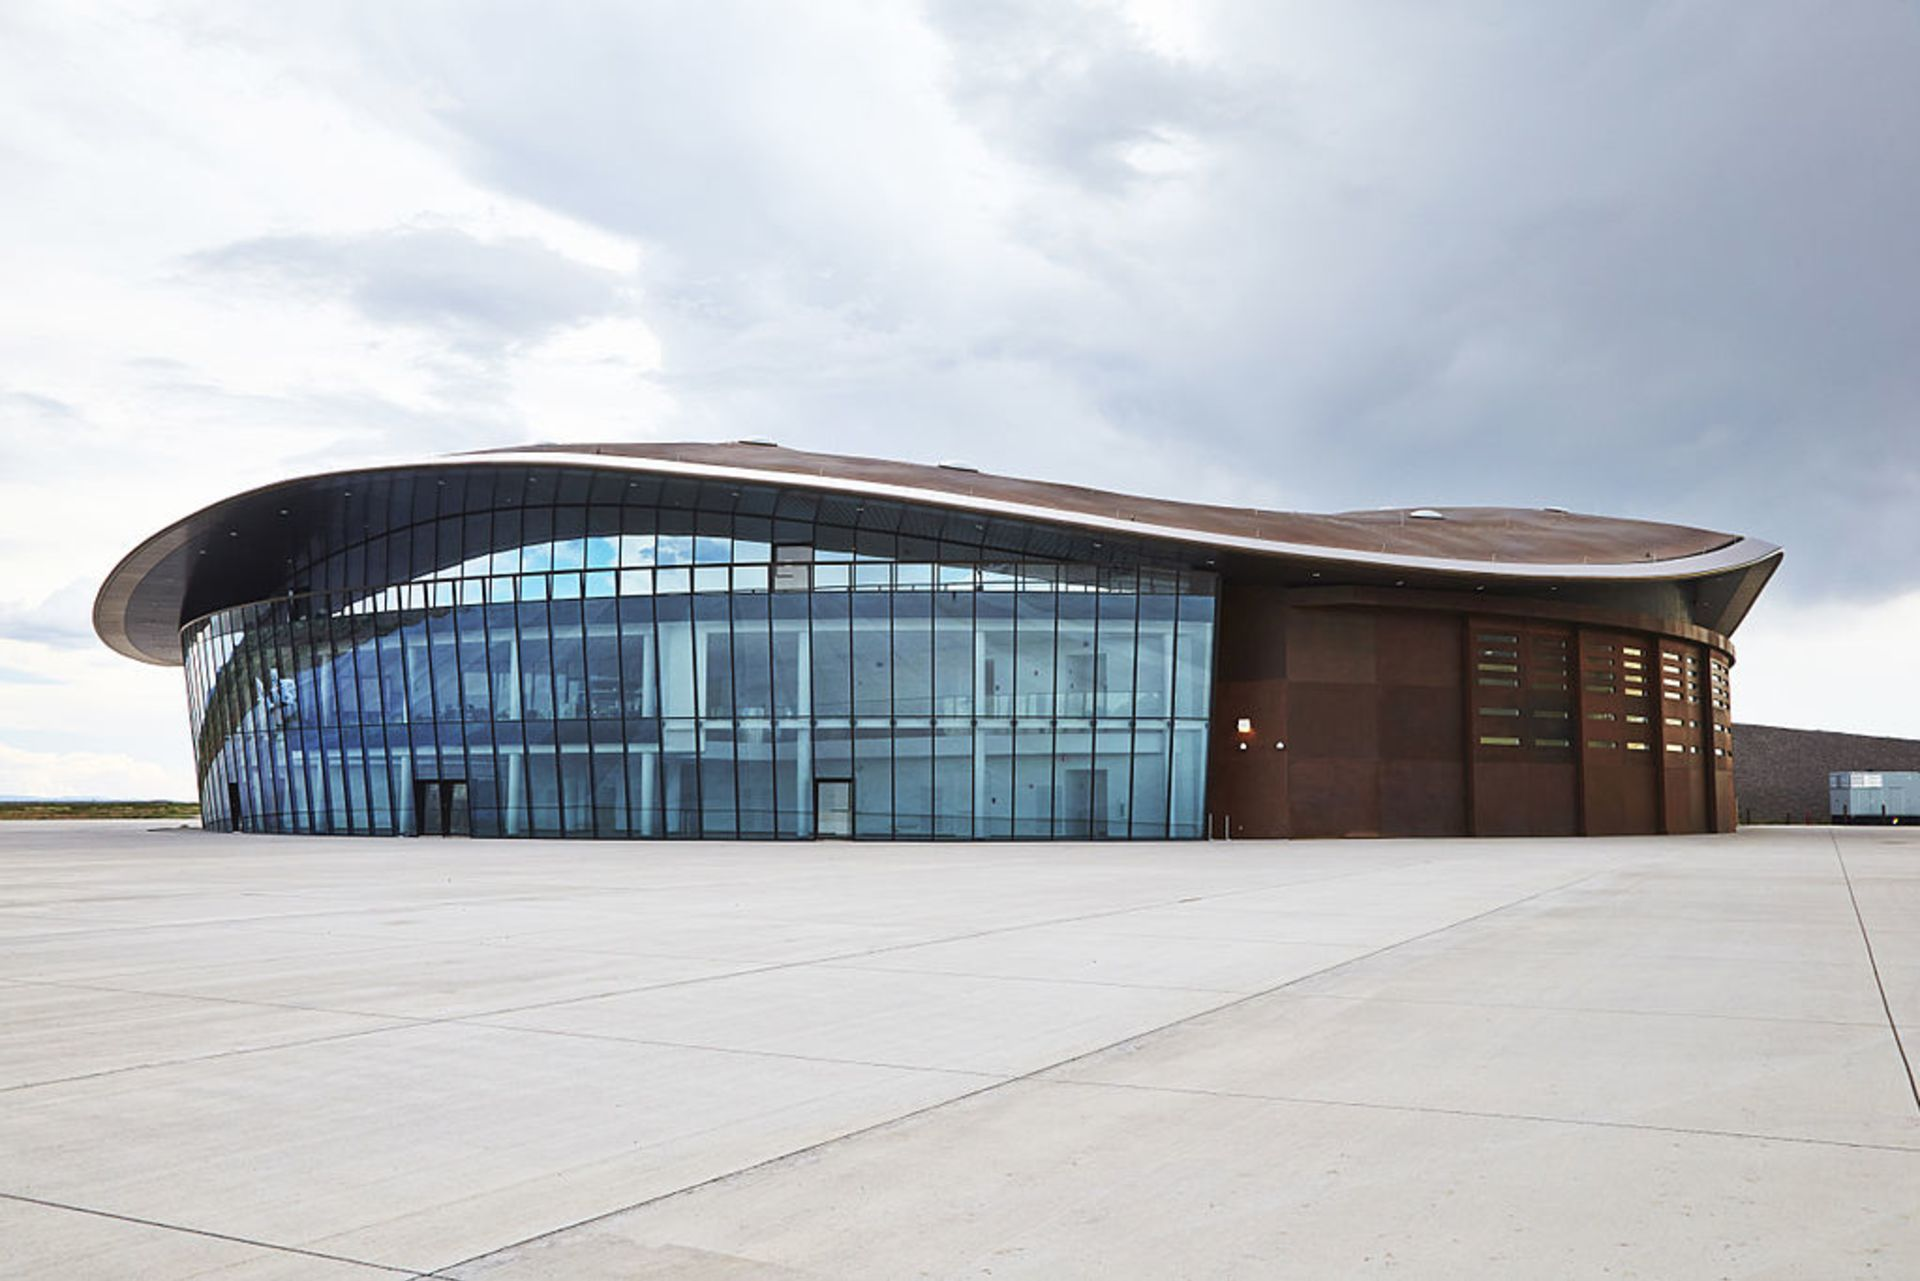 THE NEW BIGGEST THING IN LAS CRUCES – SPACEPORT AMERICA TOURS AVAILABLE NOW